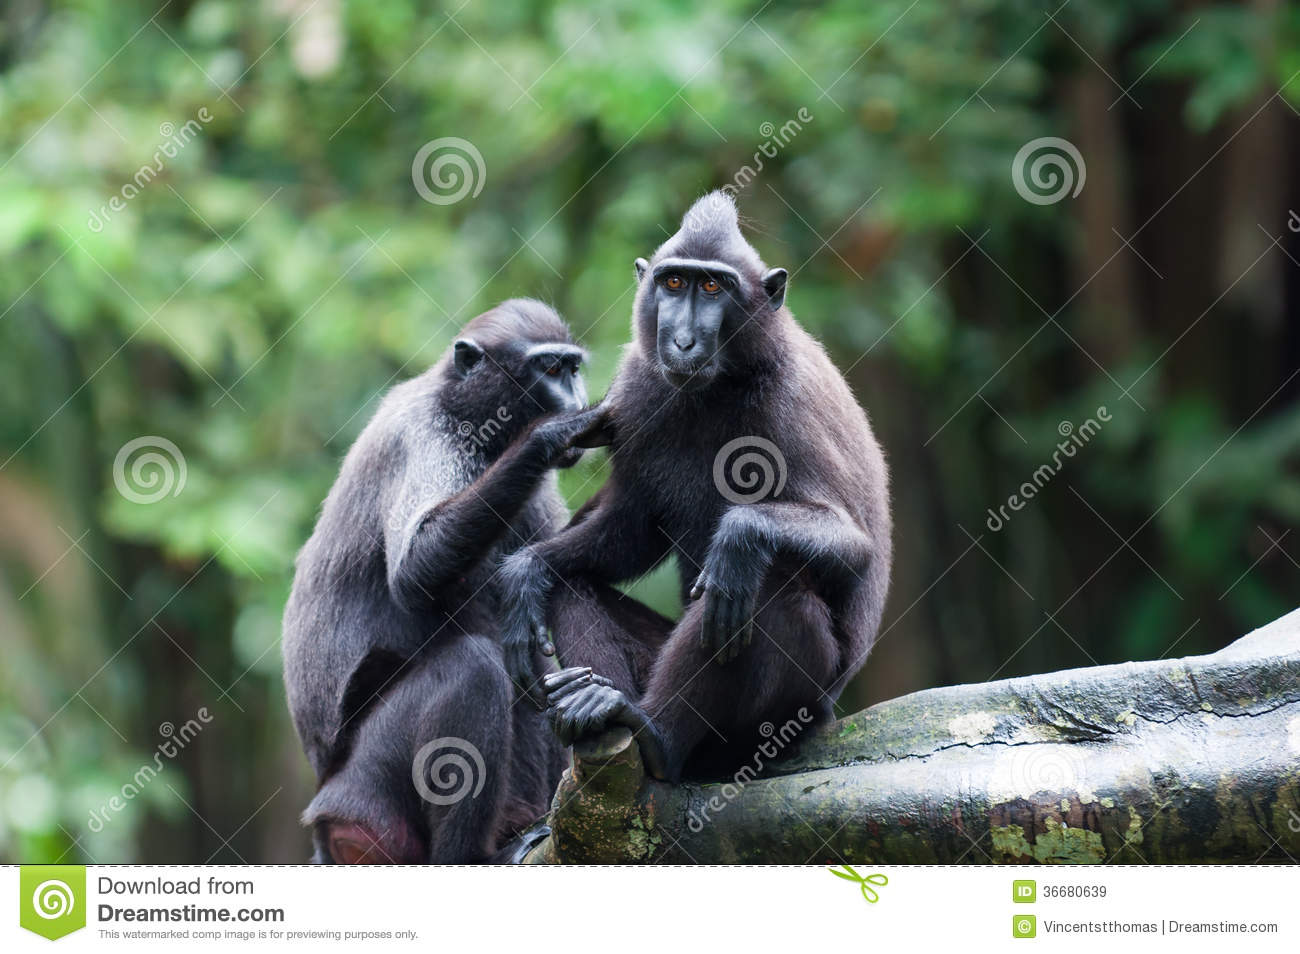 Celebes Crested Macaque clipart #14, Download drawings